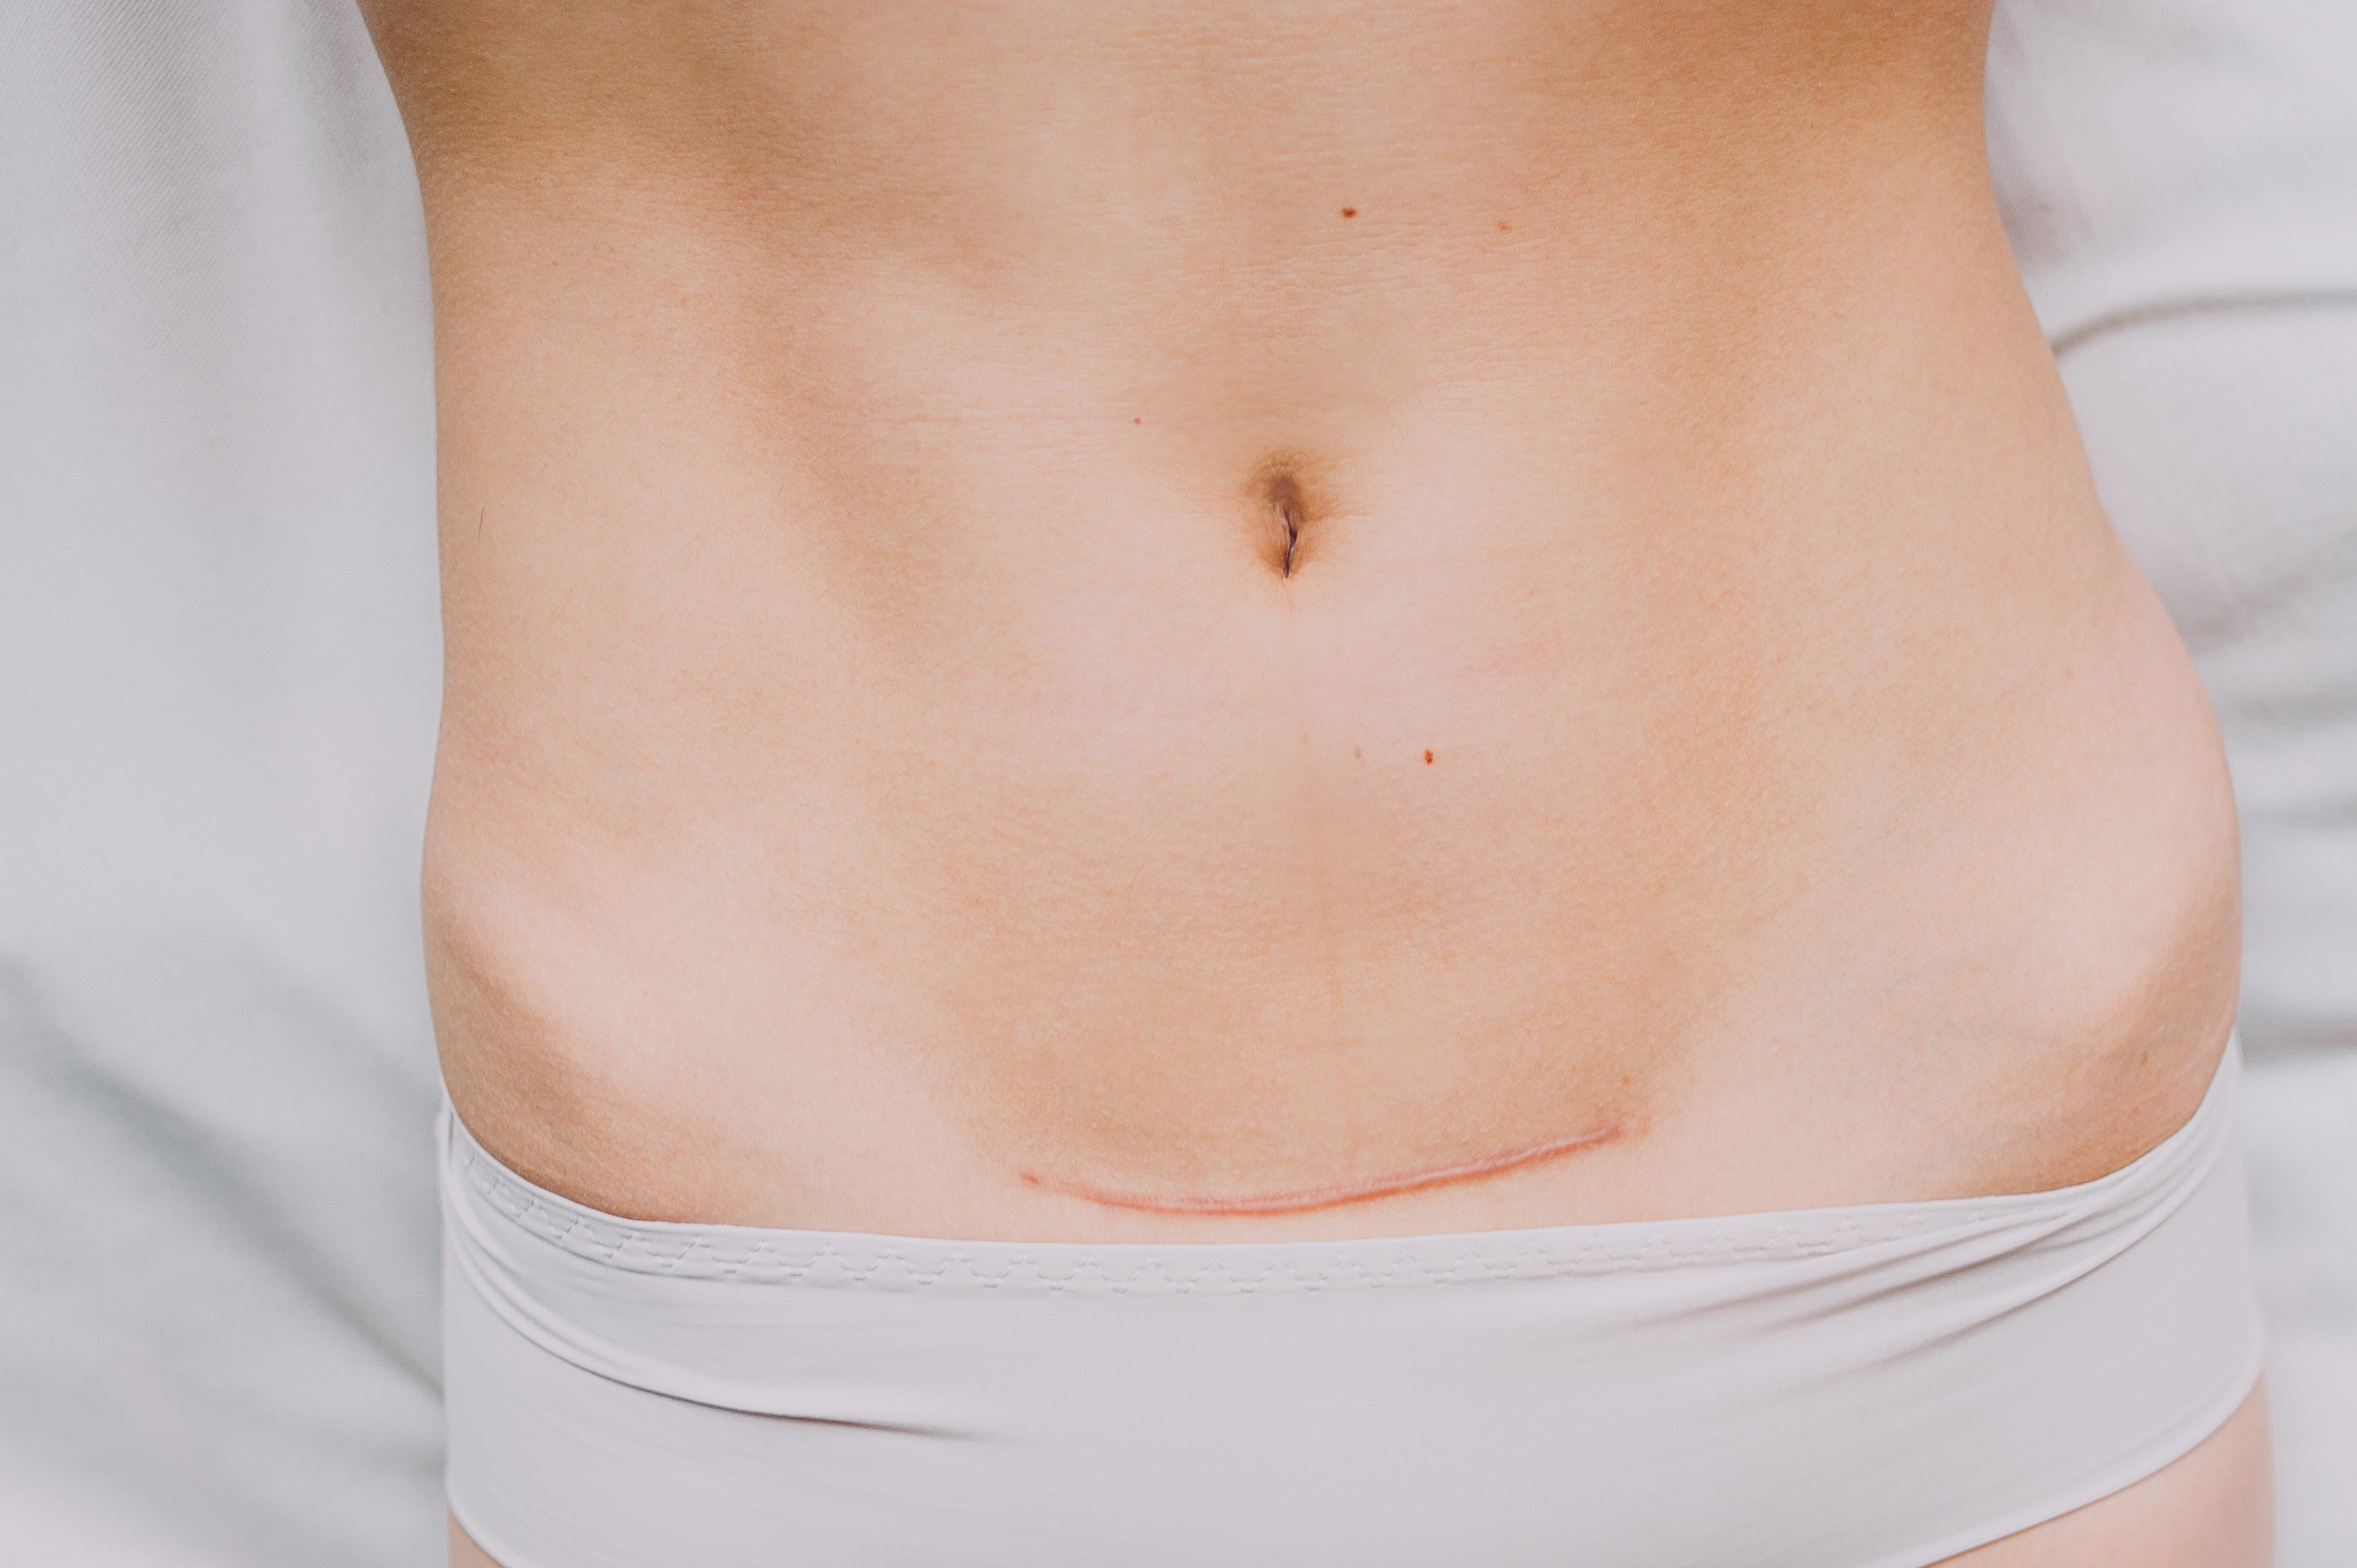 Why We Should Pay Attention To C Section Scars